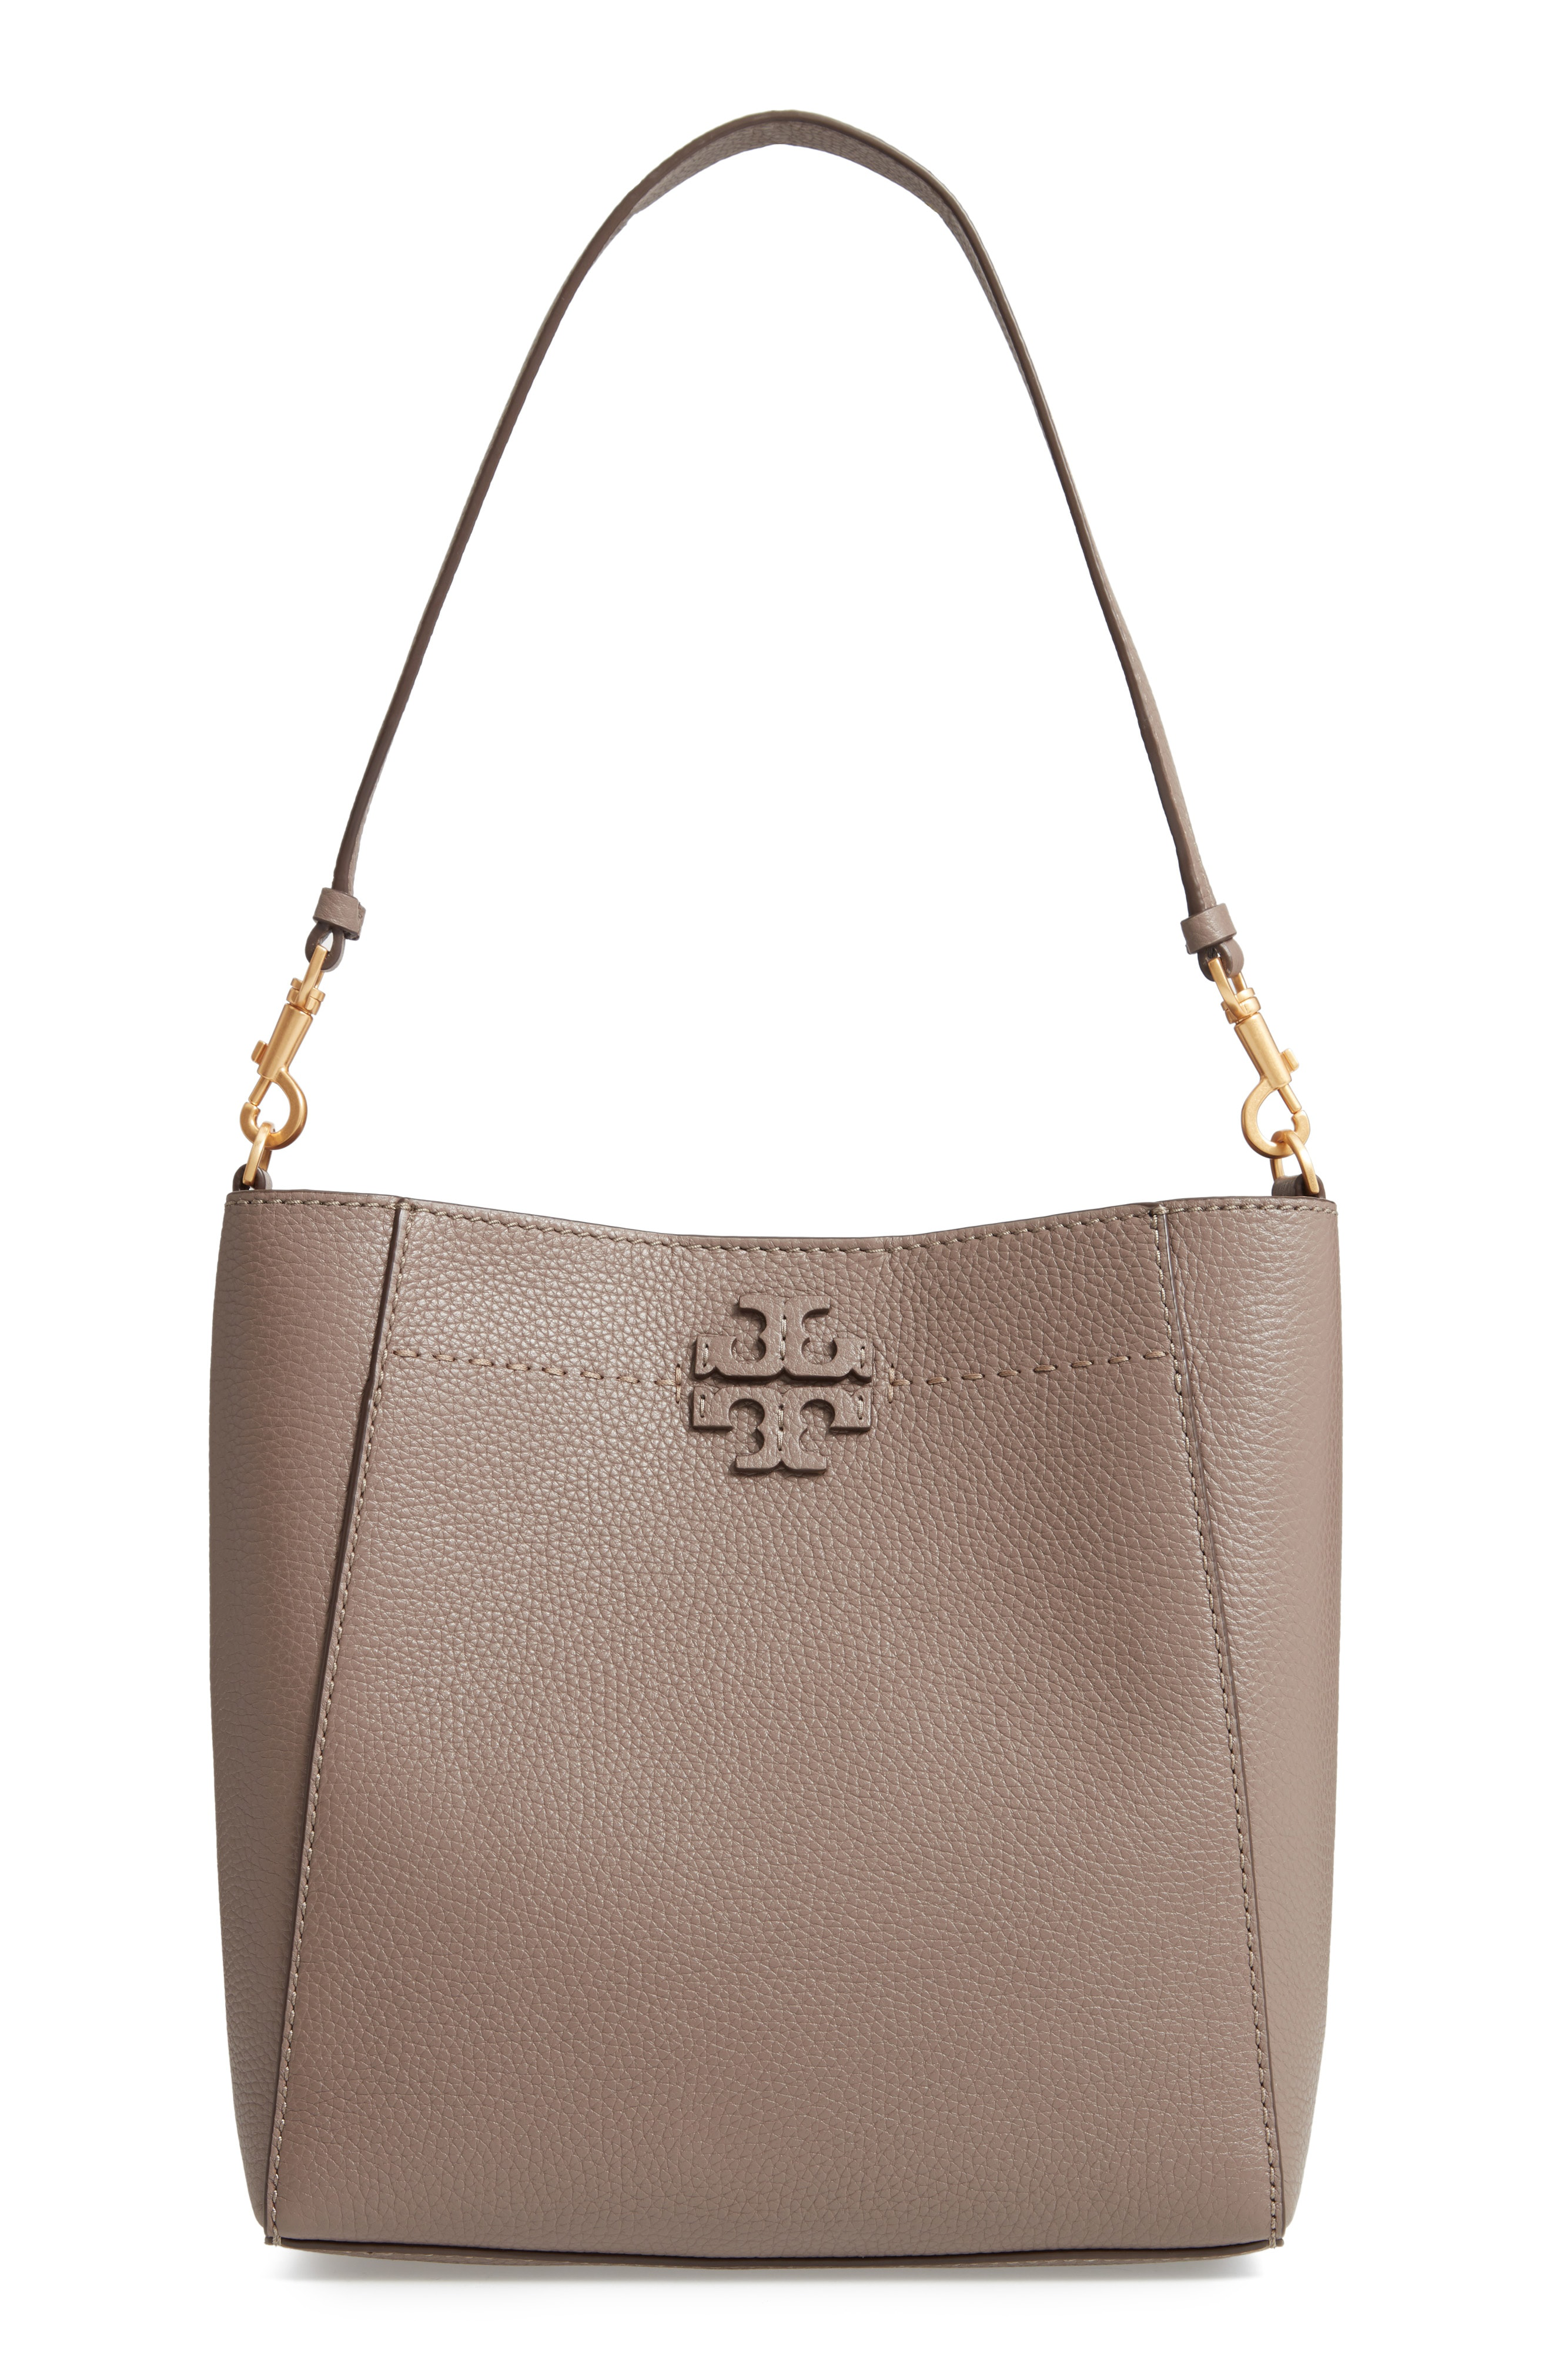 881398ef4a865 Tory Burch Mcgraw Leather Hobo Bag In Silver Maple